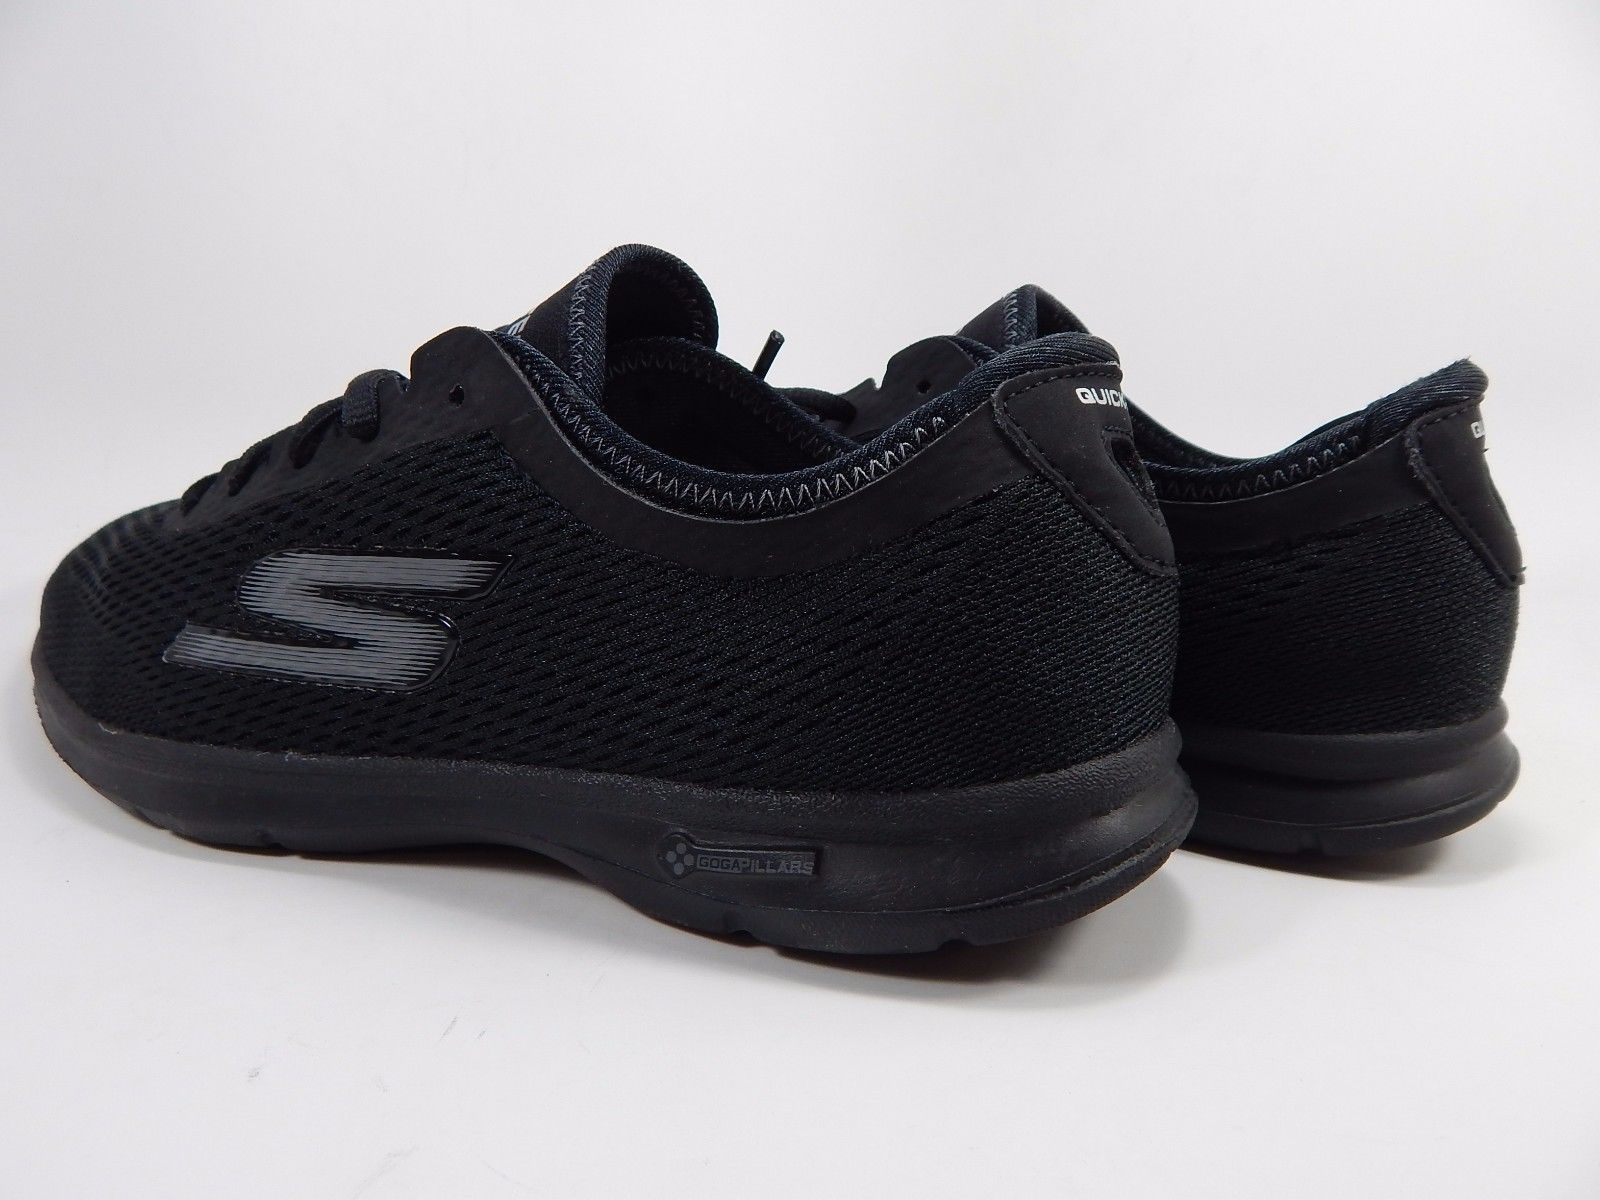 Skechers Go Step Women's Comfort Athletic Shoes Size US 8.5 M (B) EU 38.5